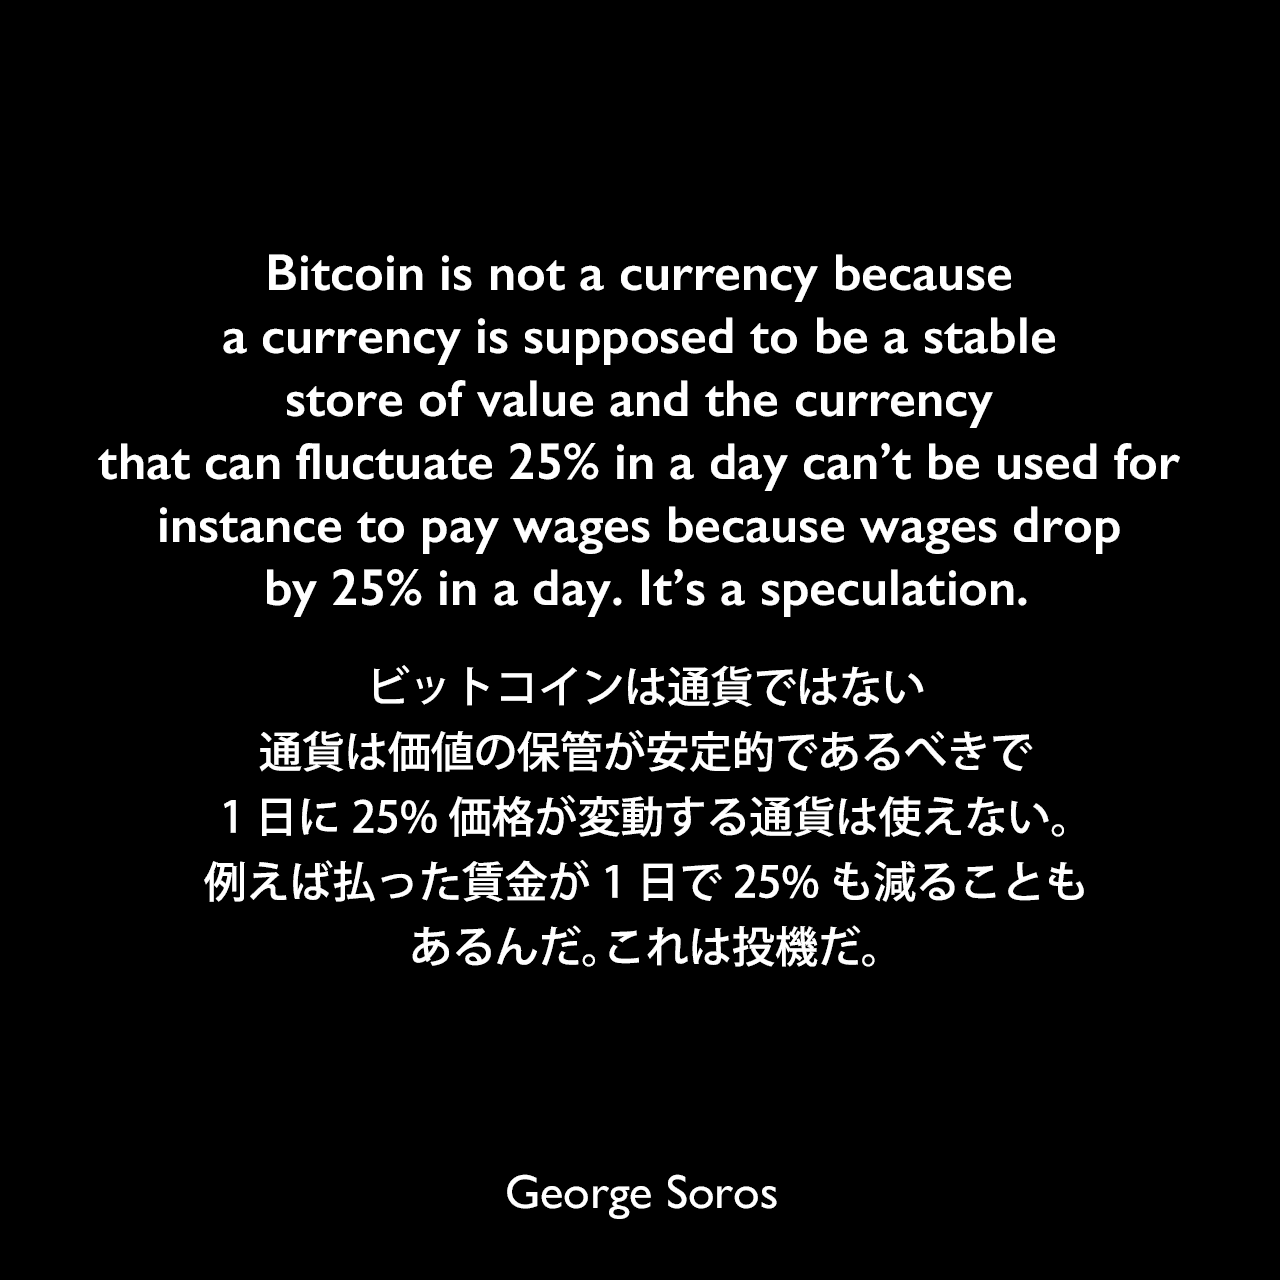 Bitcoin is not a currency because a currency is supposed to be a stable store of value and the currency that can fluctuate 25% in a day can't be used for instance to pay wages because wages drop by 25% in a day. It's a speculation.ビットコインは通貨ではない、通貨は価値の保管が安定的であるべきで、1日に25%価格が変動する通貨は使えない。例えば払った賃金が1日で25%も減ることもあるんだ。これは投機だ。George Soros